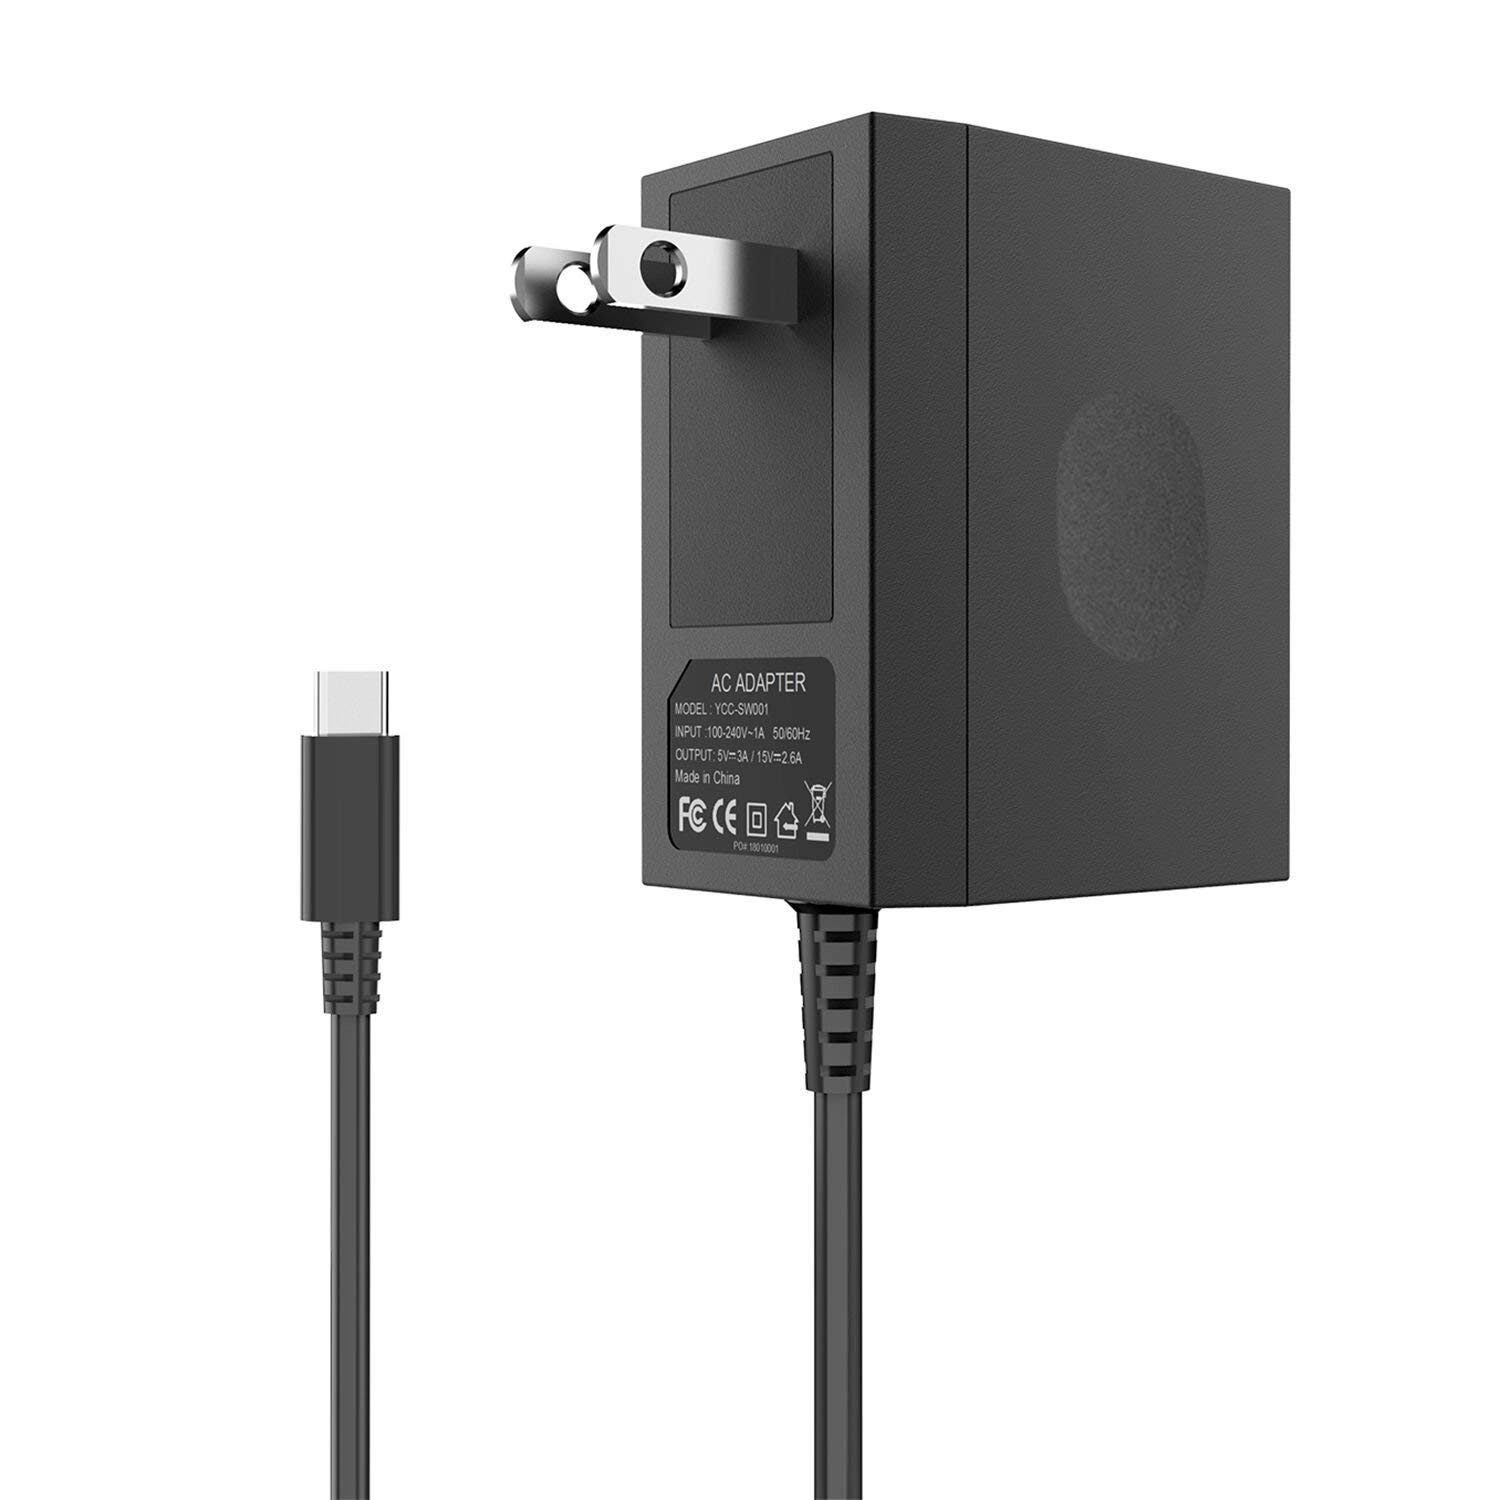 Charger for Nintendo Switch, YCCTEAM Switch Charger AC Adapter 15V/2.6A Fast Charging Replacement for Nintendo Switch with 5FT Type C Cable, Support TV Mode and Dock